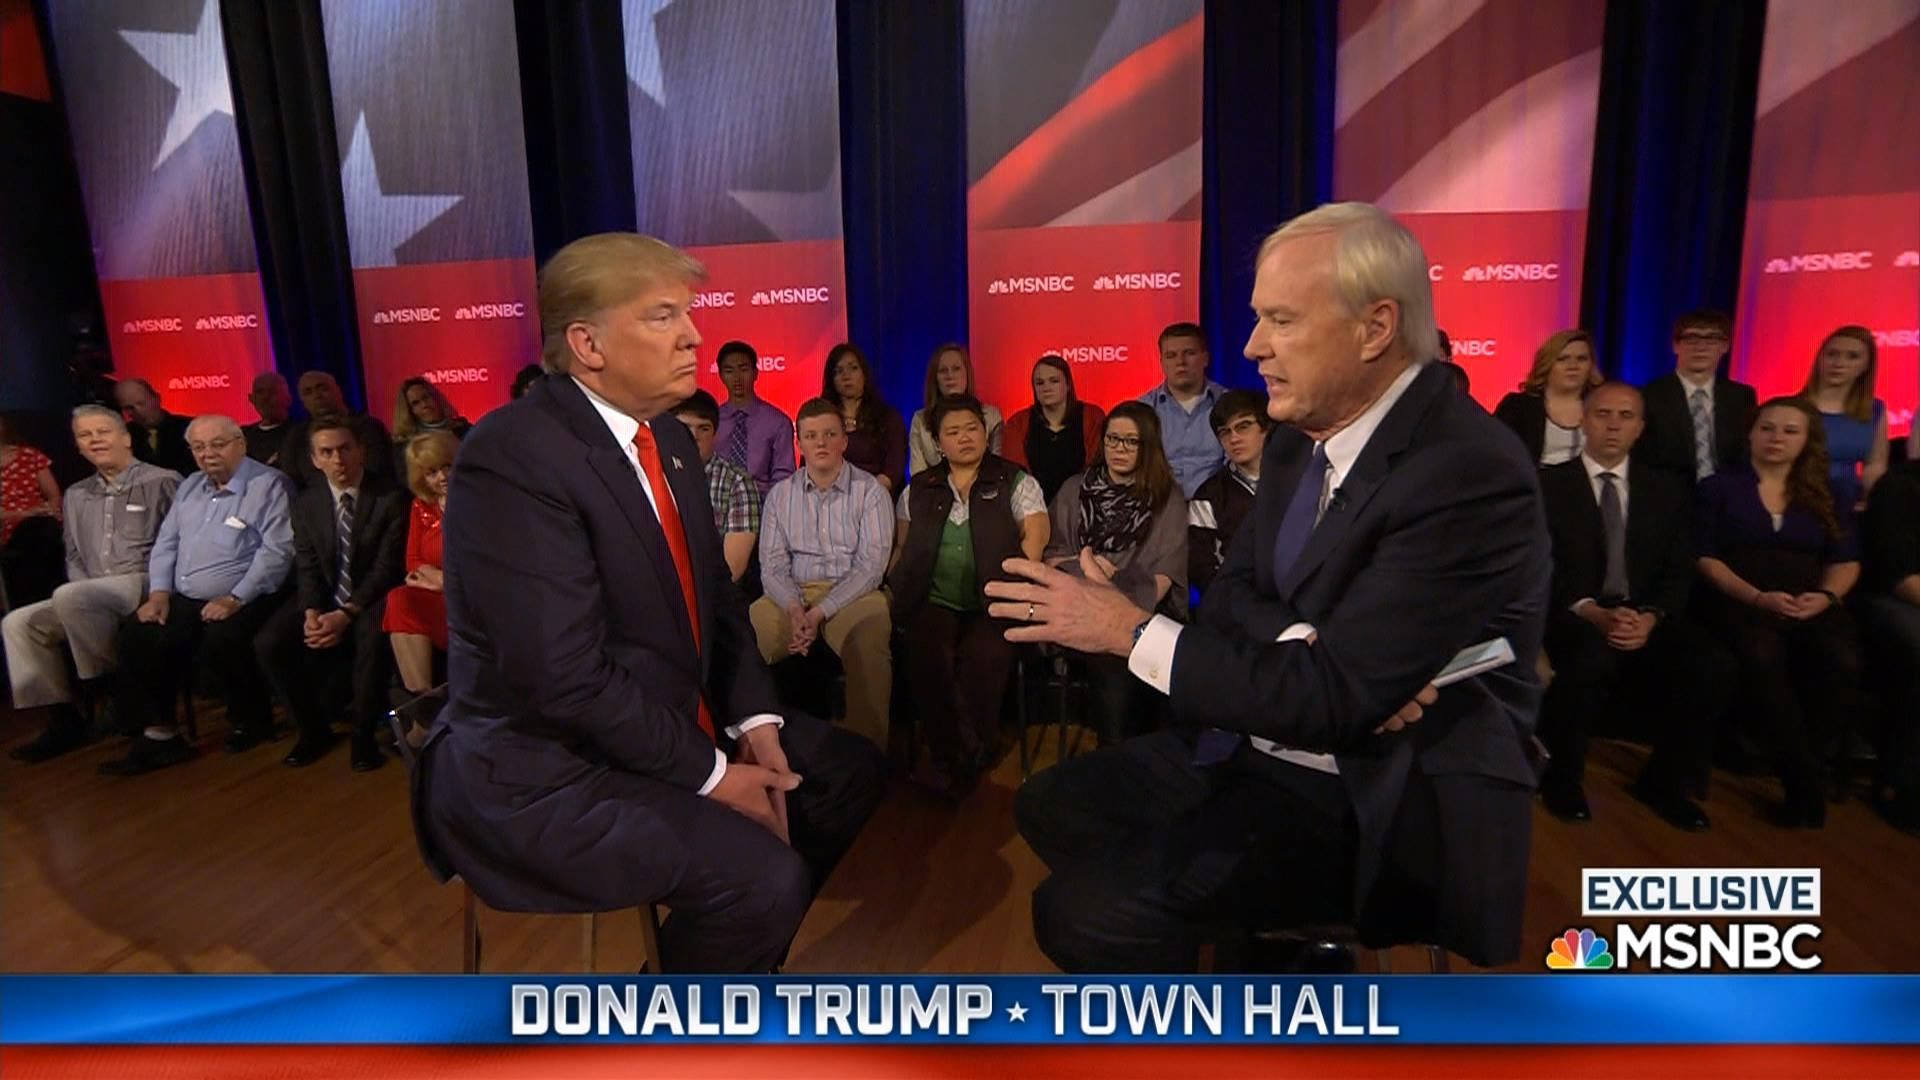 Highlights from Donald Trump's MSNBC town...